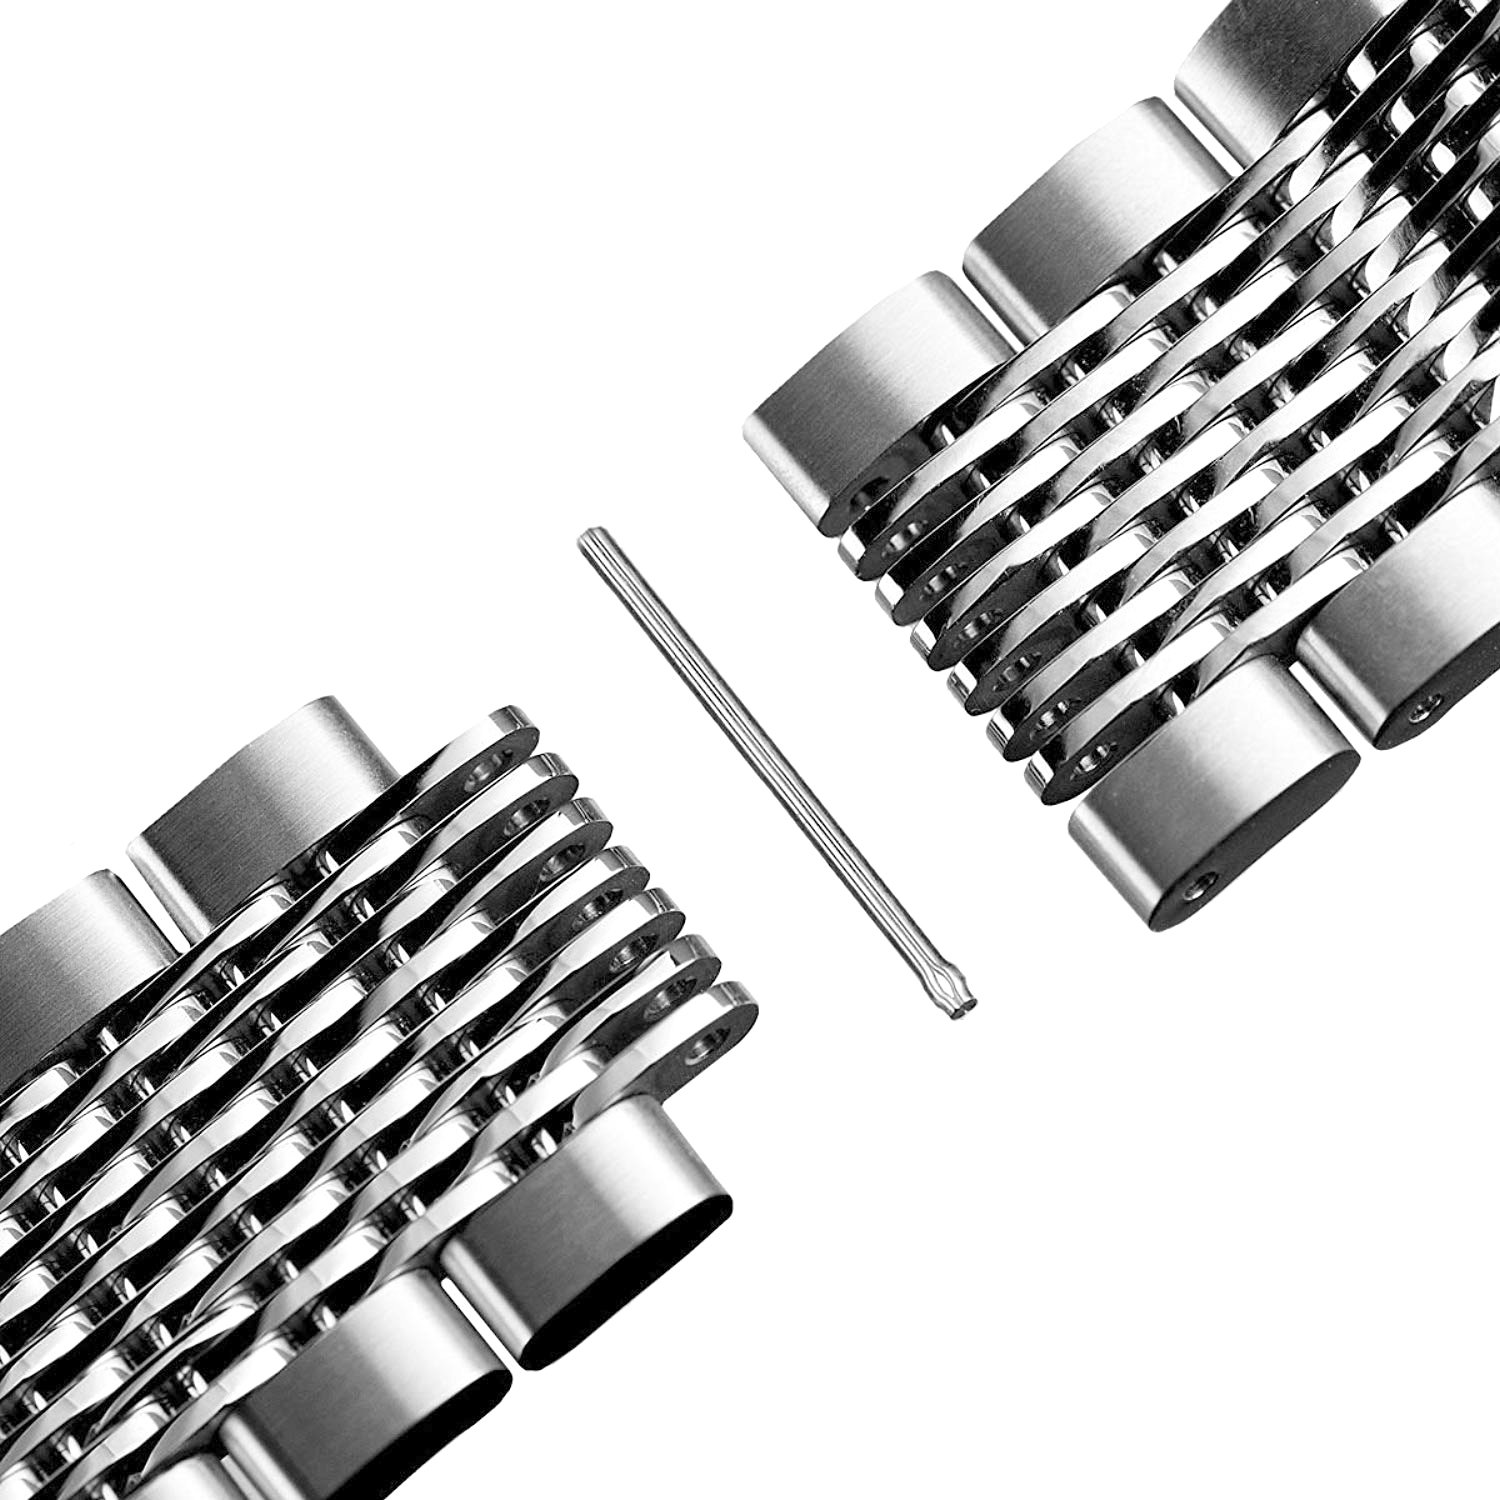 Solid Mesh Stainless Steel Bracelets 20mm/22mm/24mm Watch Bands Deployment Buckle Brushed/Polished Strap for Men Women by Hstrap (Image #3)